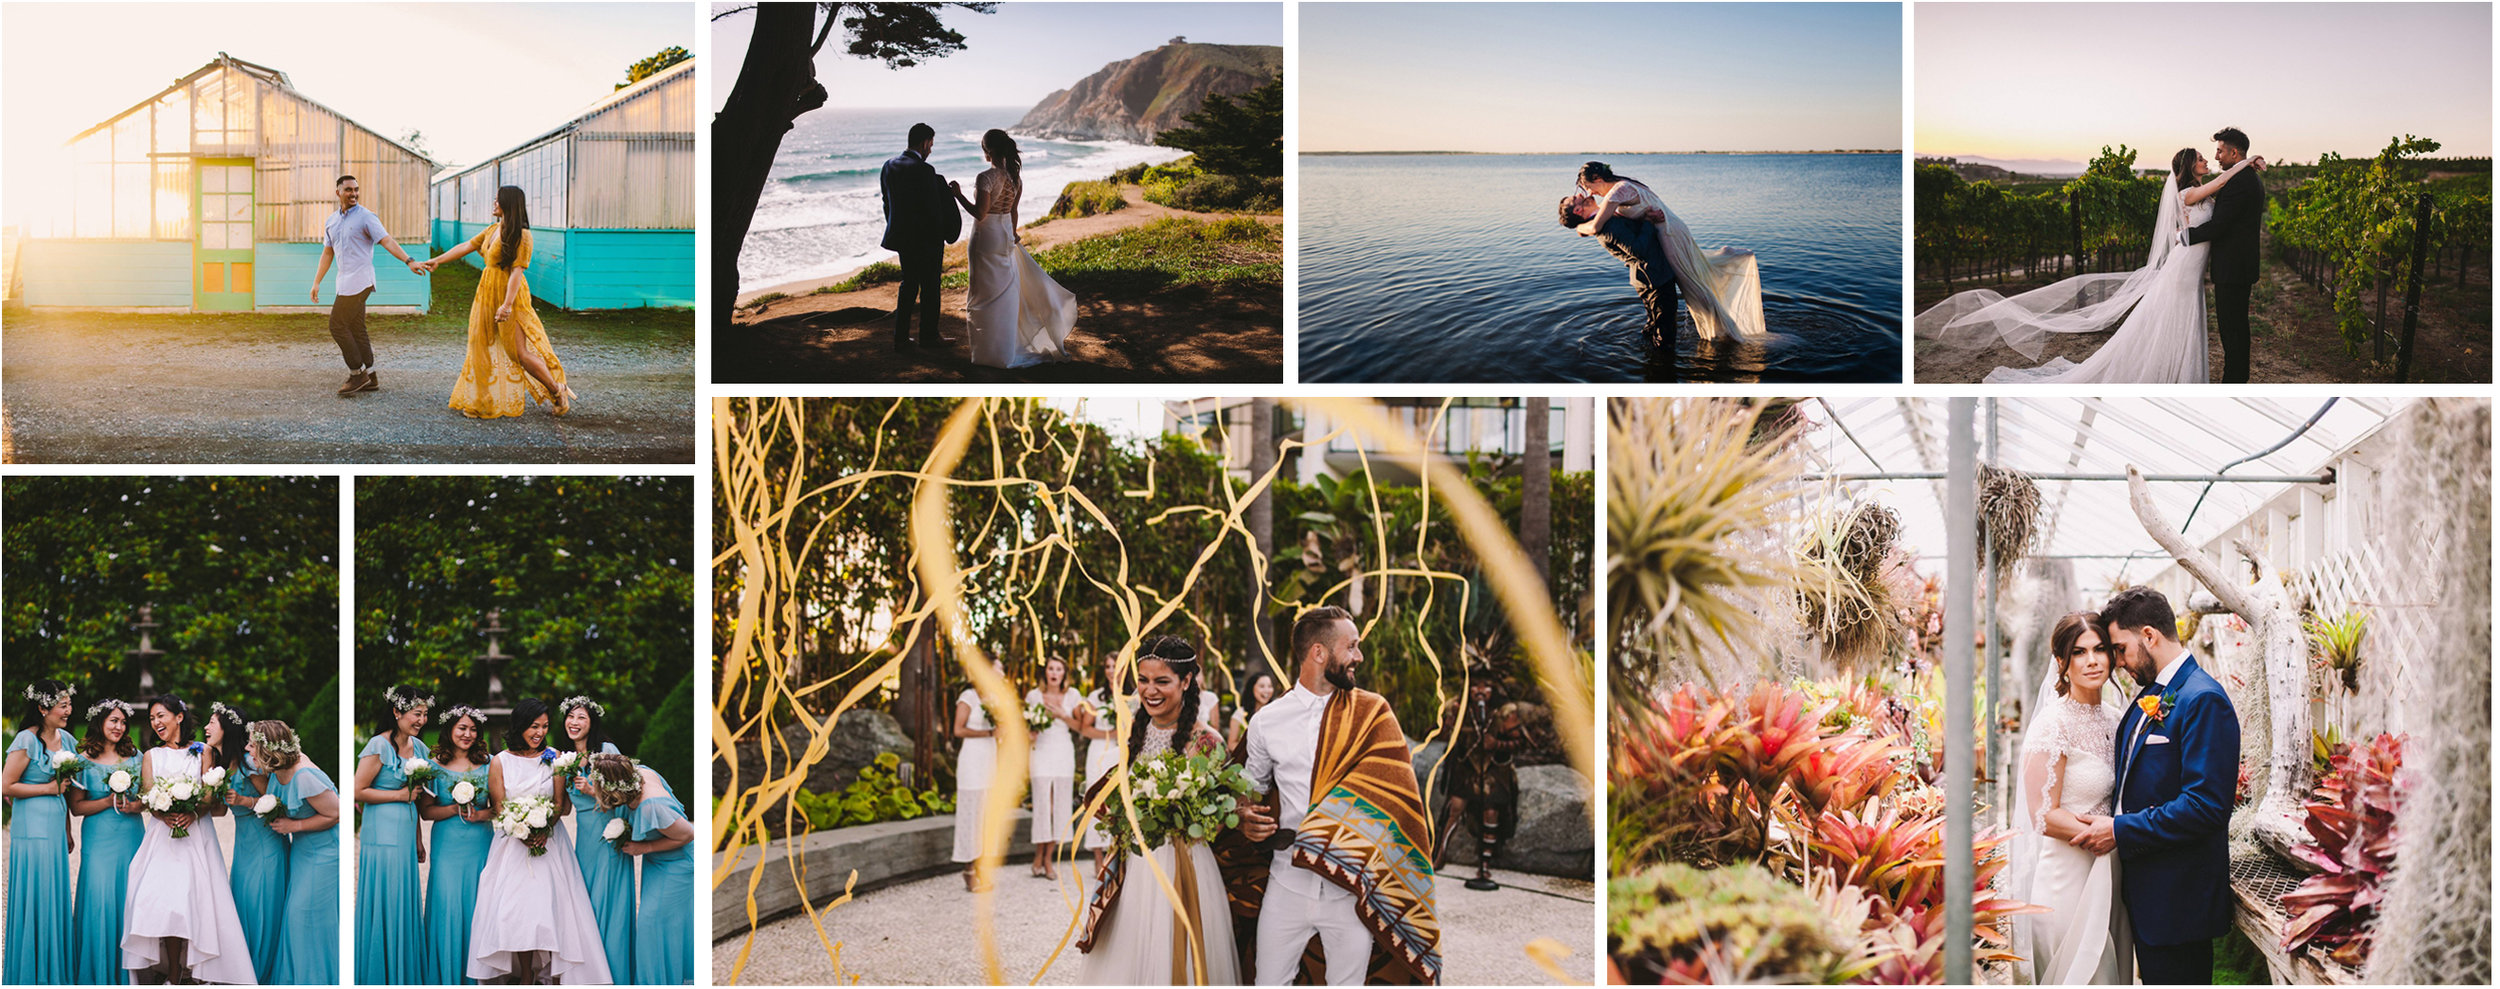 SoCal Wedding Comp Collage.jpg